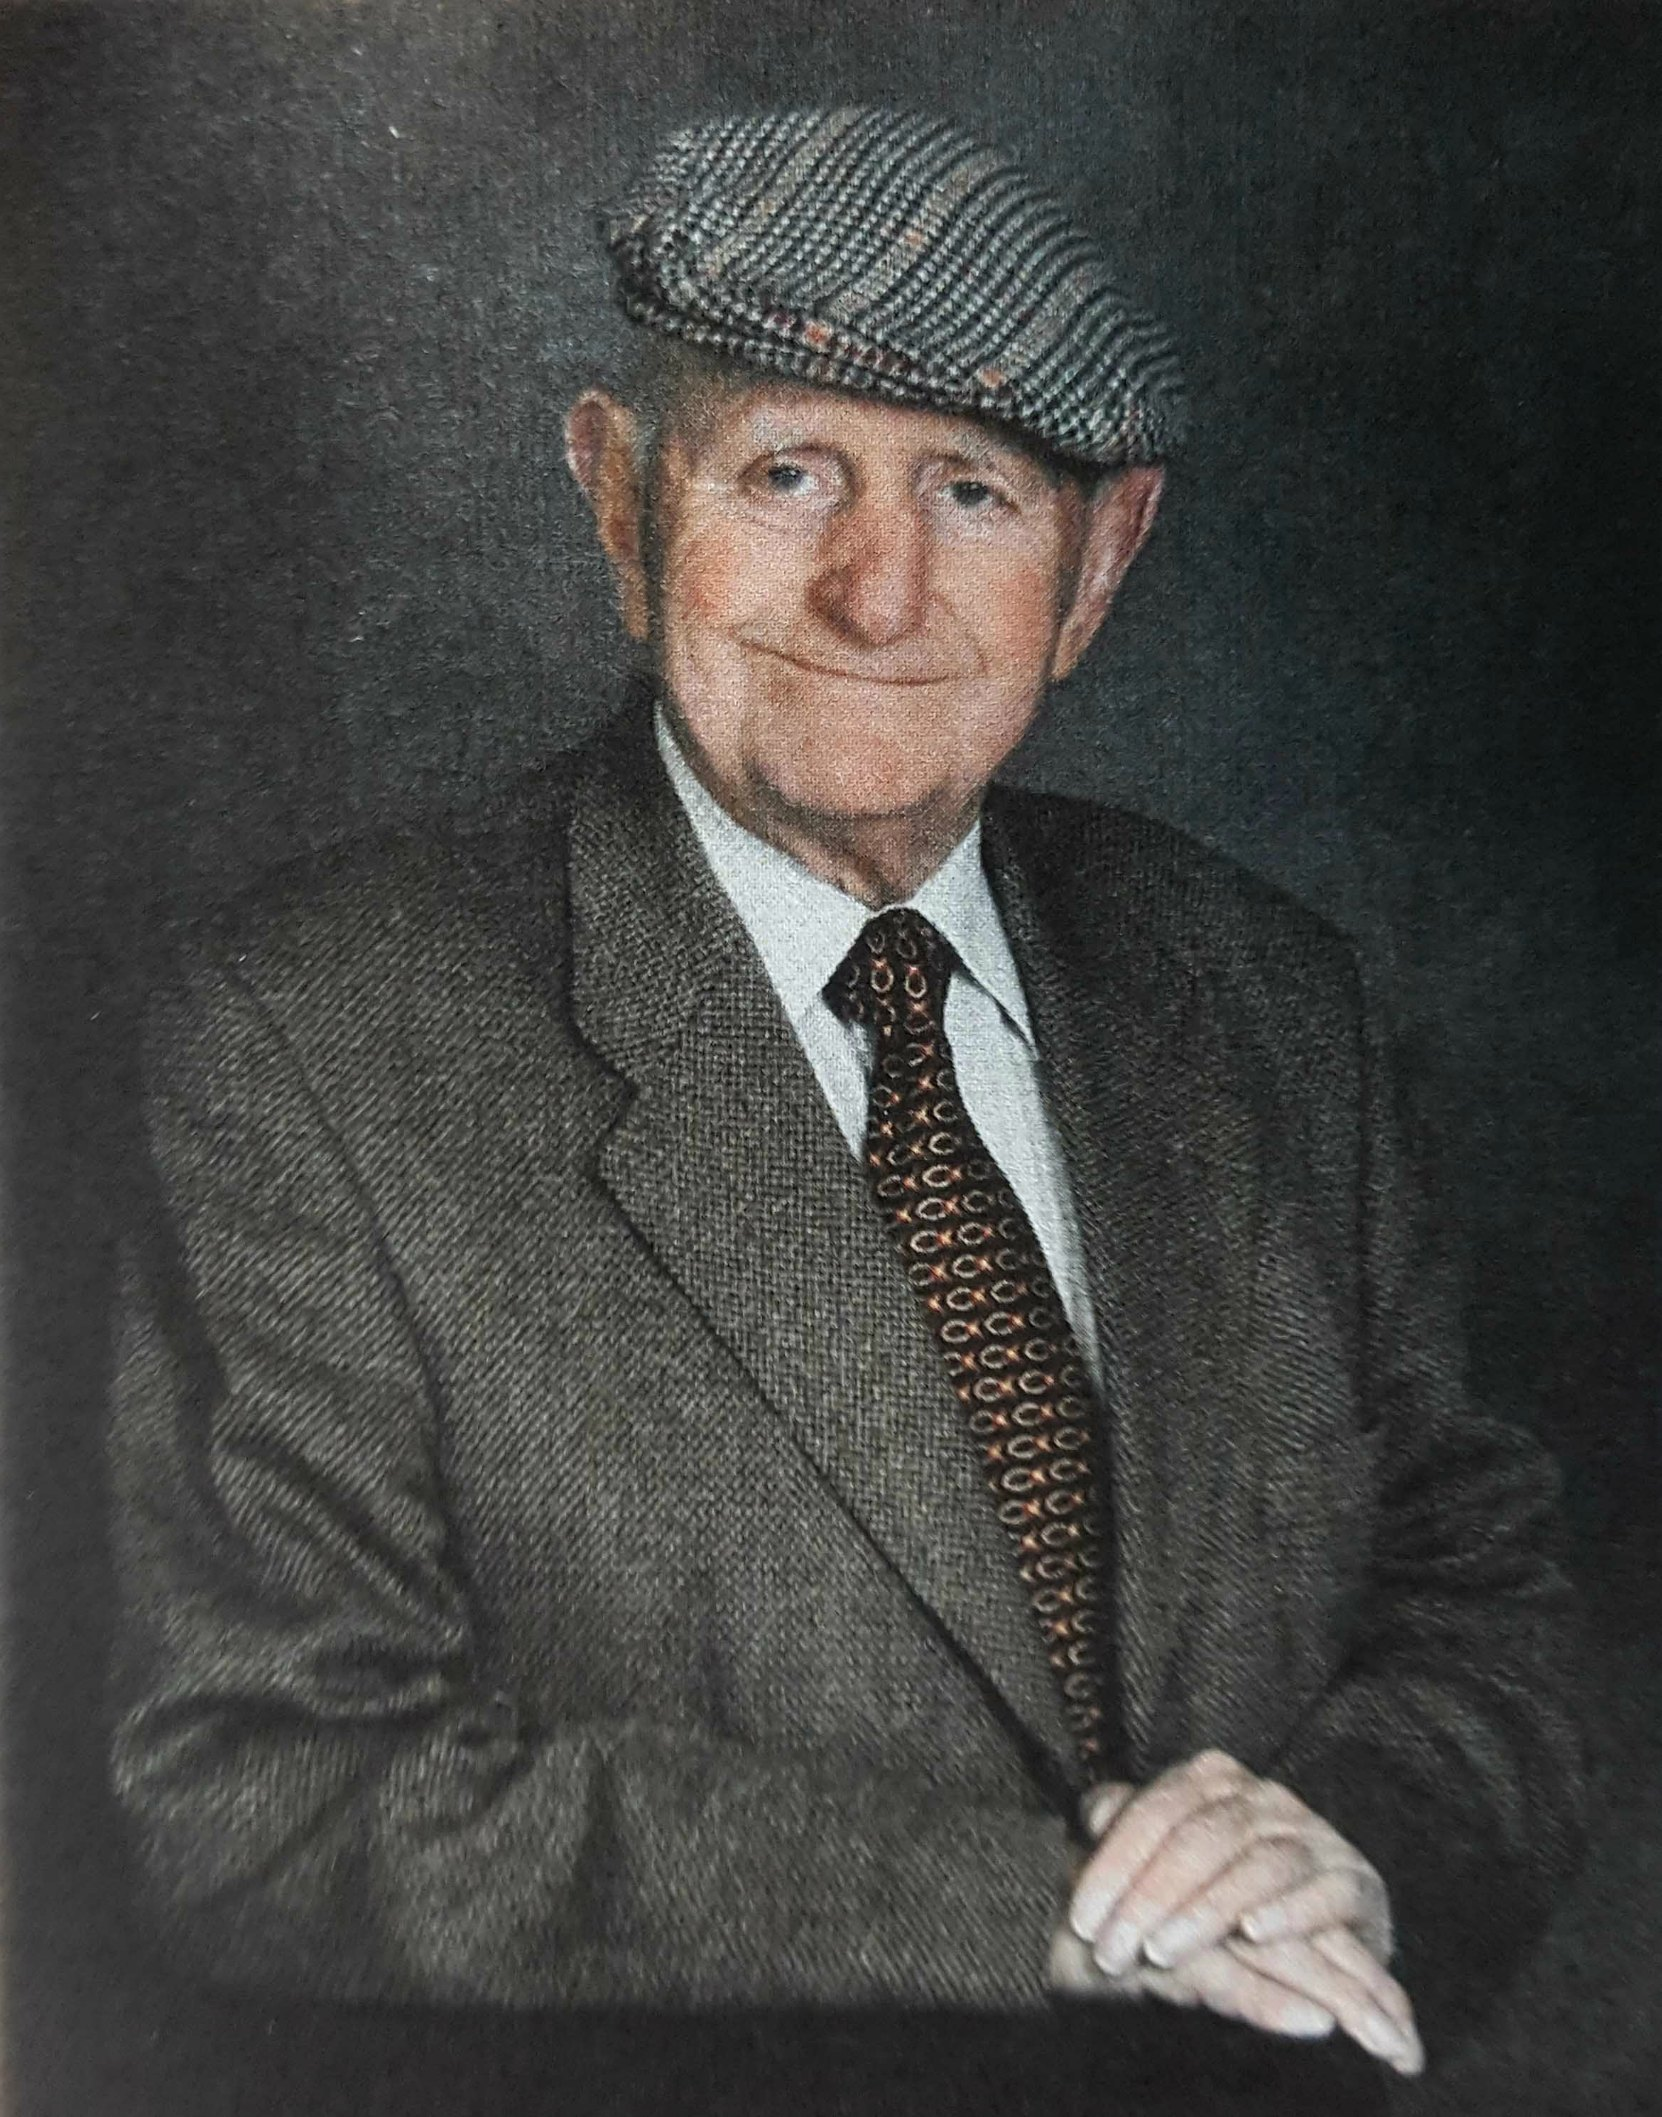 John Fenmor-Collins. This photo was used at John's Memorial Service in September 2017.